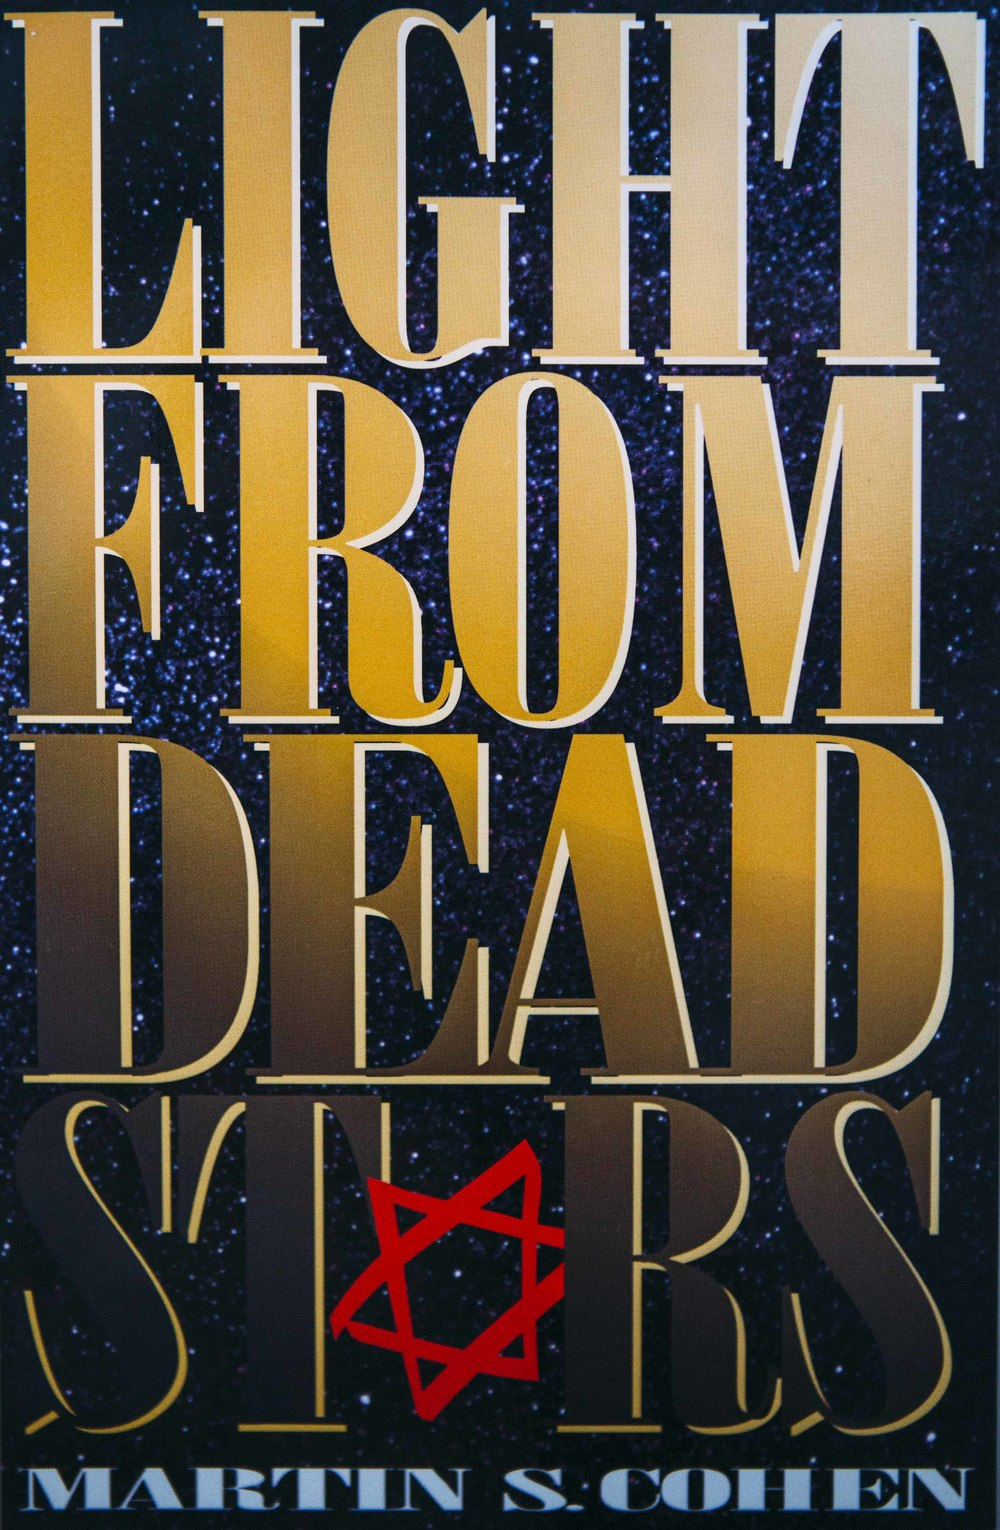 MSC_BookCover_LightFromDeadStars.JPG